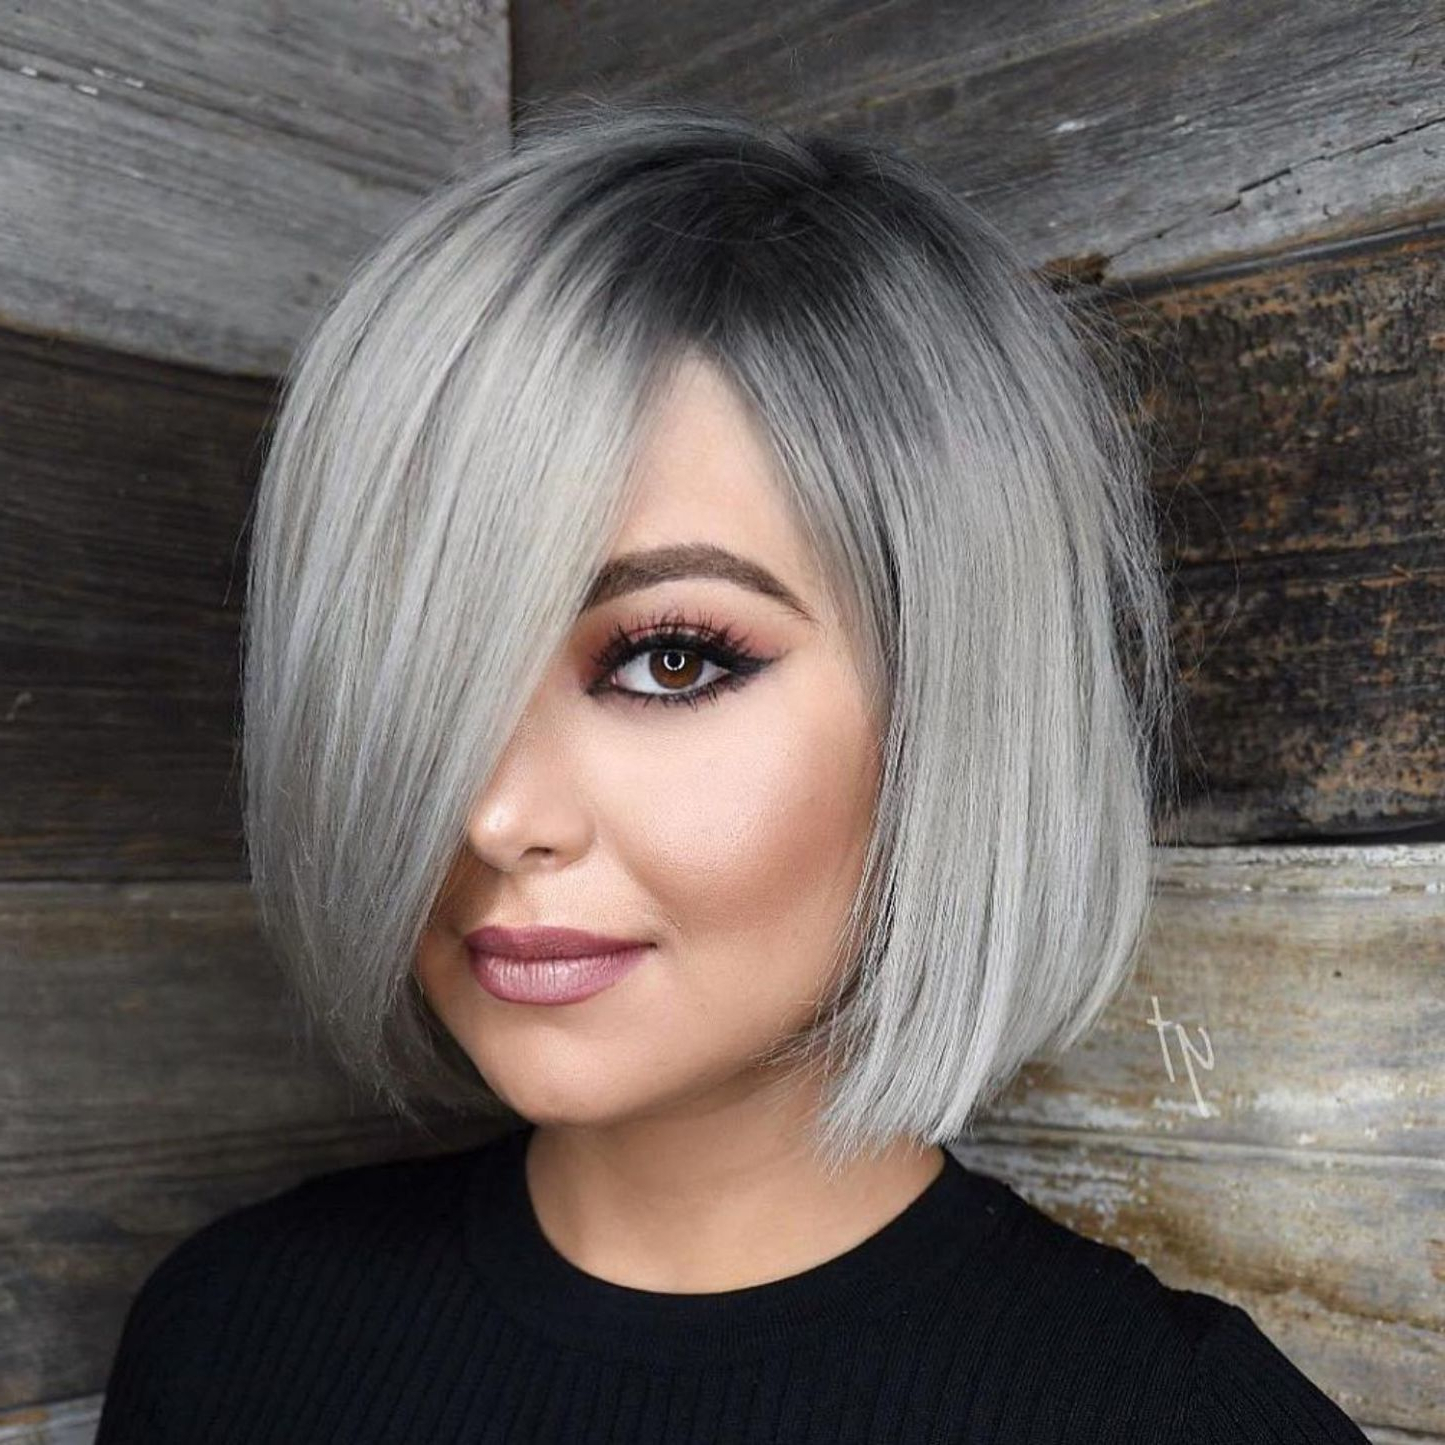 40 Stylish And Sassy Bobs For Round Faces In 2018 | My Hair Style Regarding Sleek Gray Bob Hairstyles (View 10 of 20)